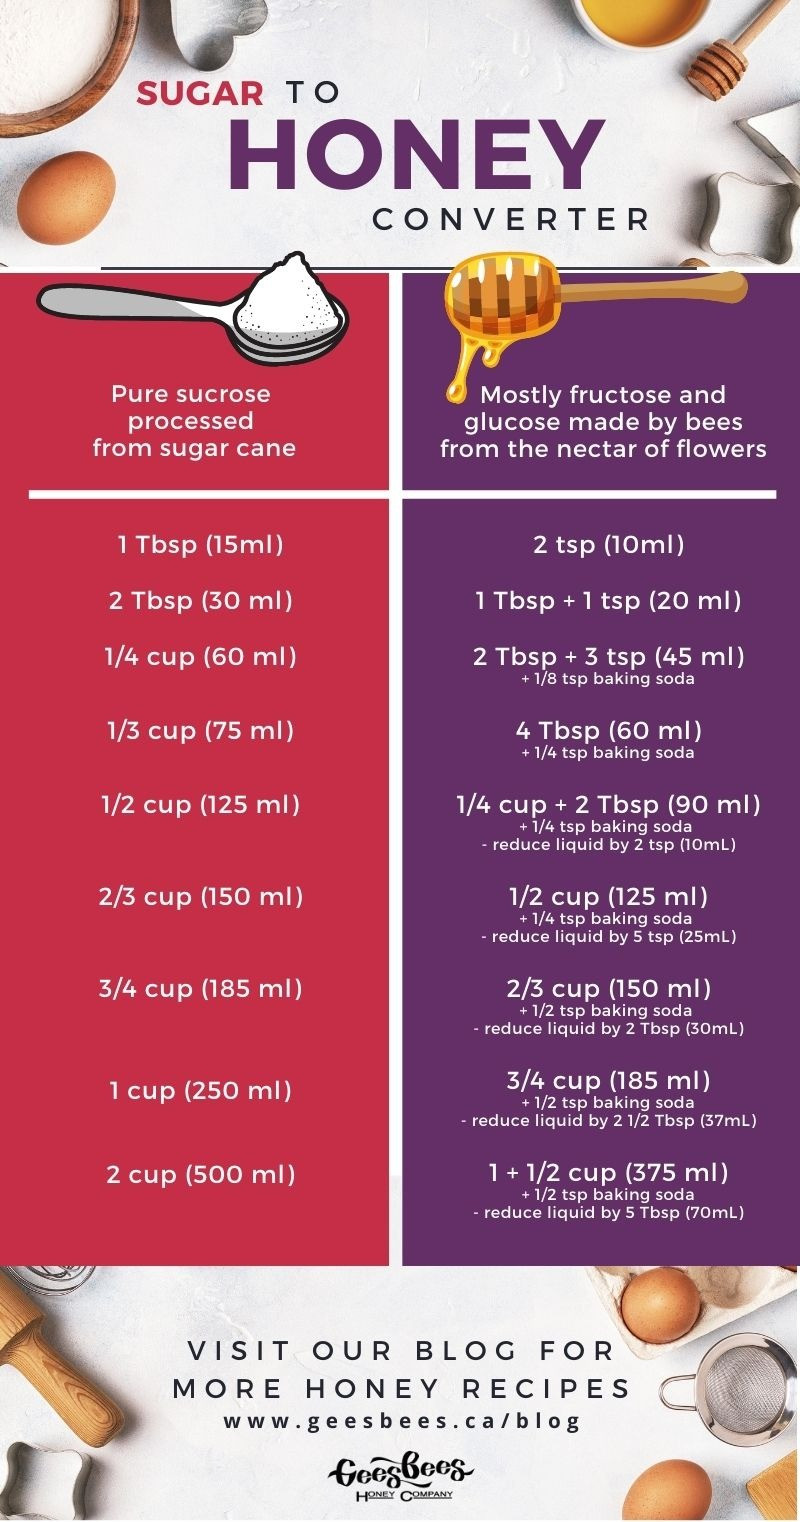 Table showing how much honey to substitute for sugar in baking recipes